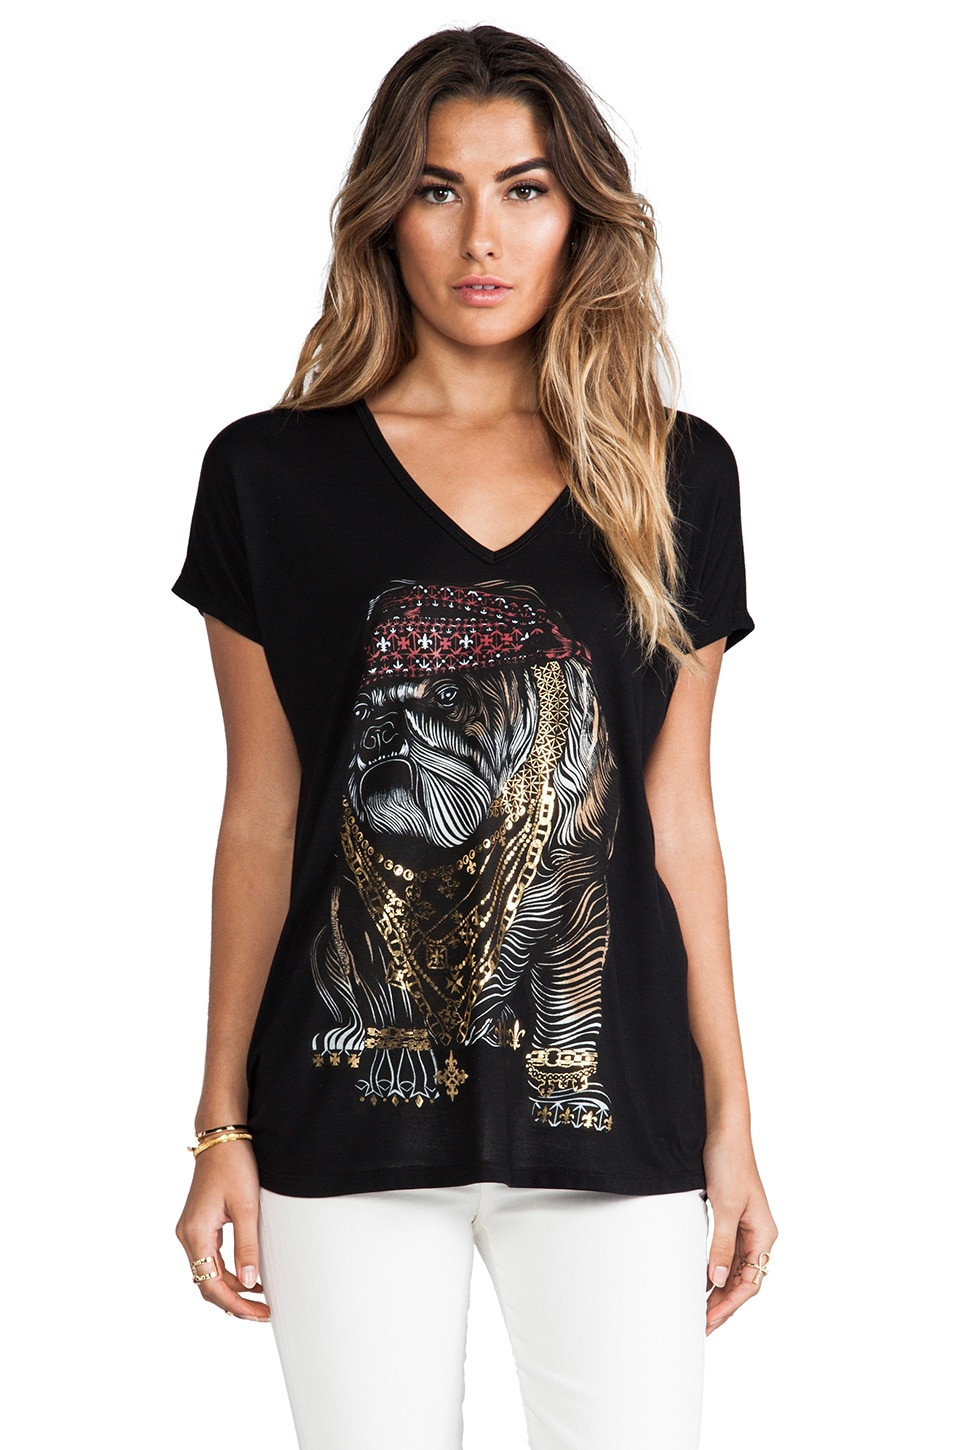 Lauren Moshi April Color Bulldog Oversized V-Neck Tee in Black